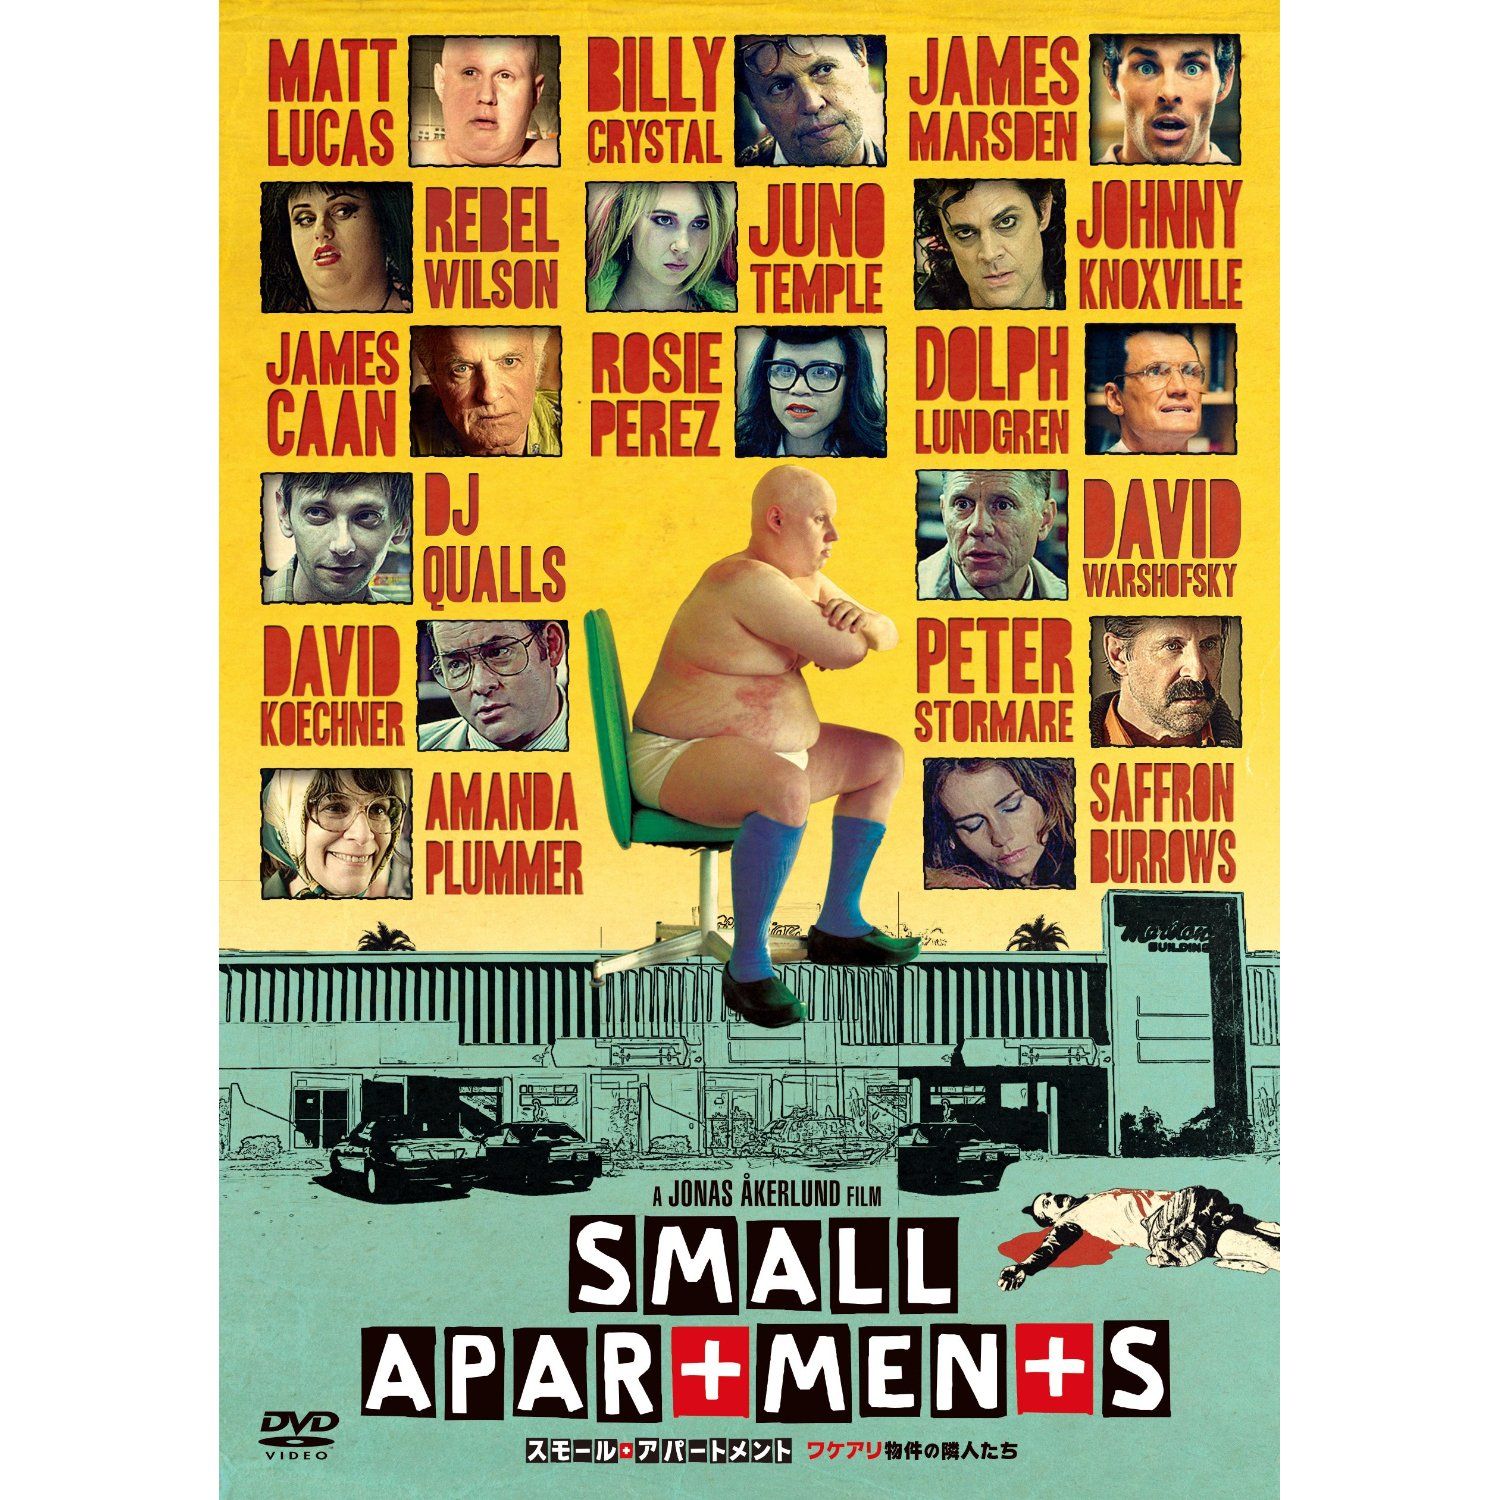 When Books Become Movies: Small Apartments